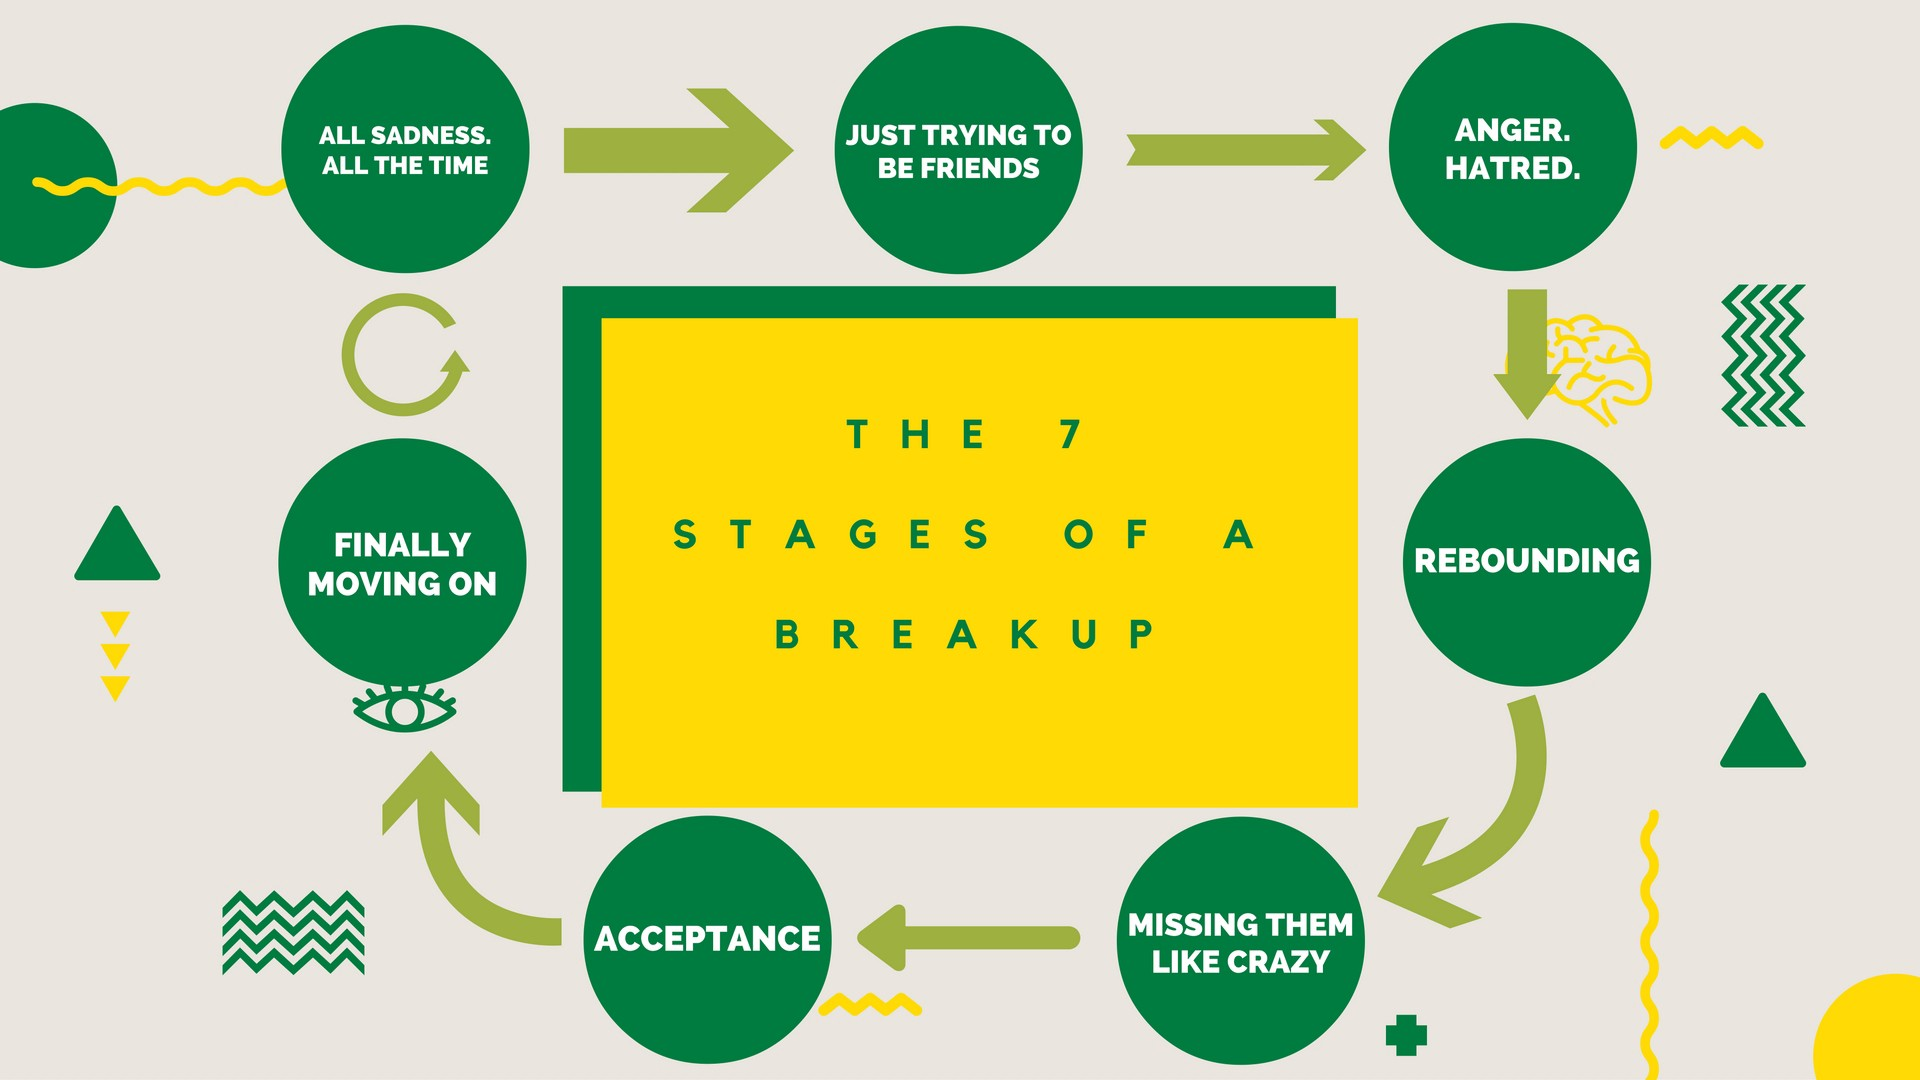 Making breakups and relationships easier 3 simple steps